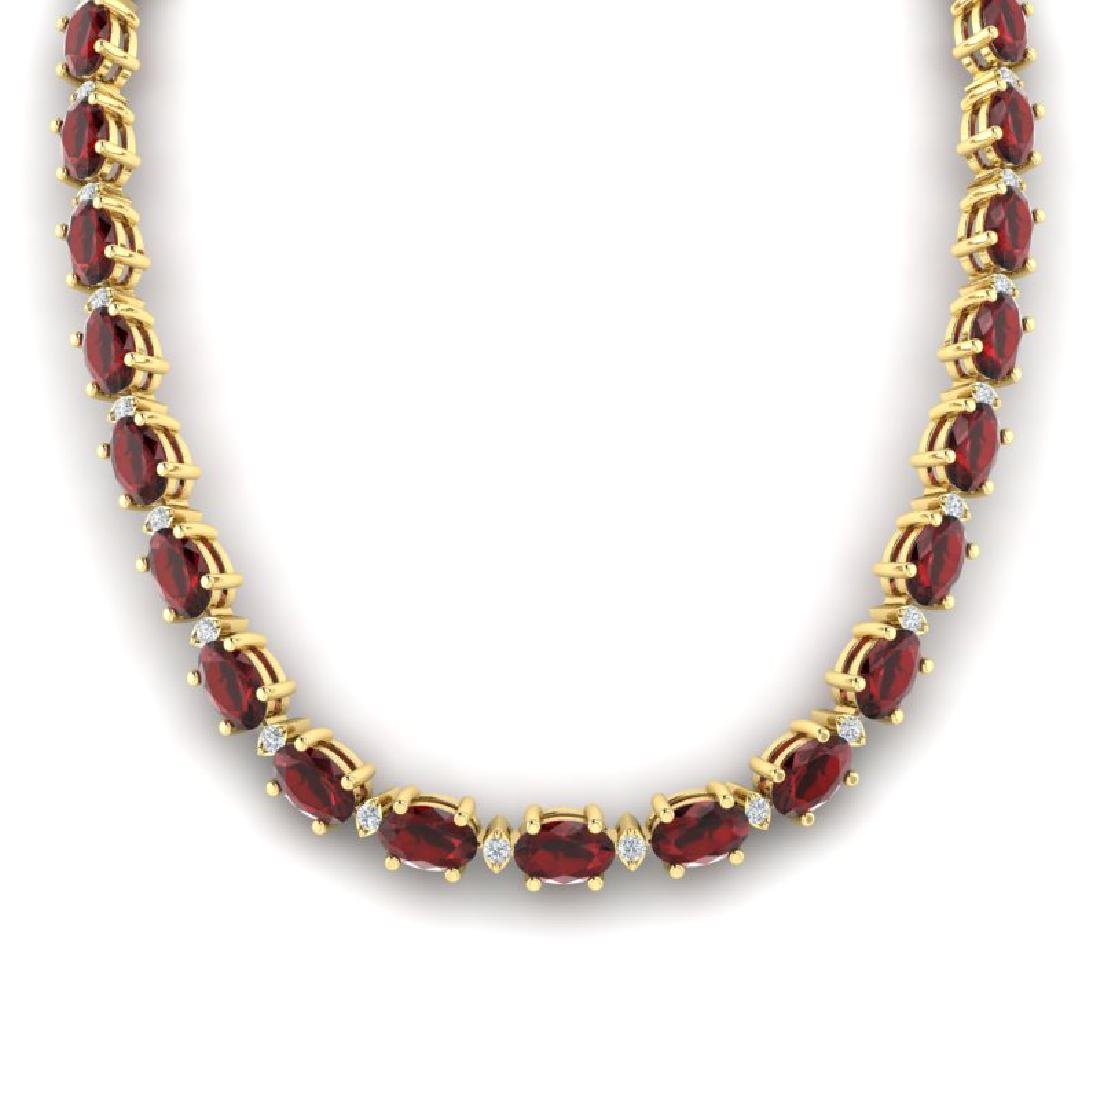 33 CTW Garnet & VS/SI Diamond Eternity Tennis Necklace - 3